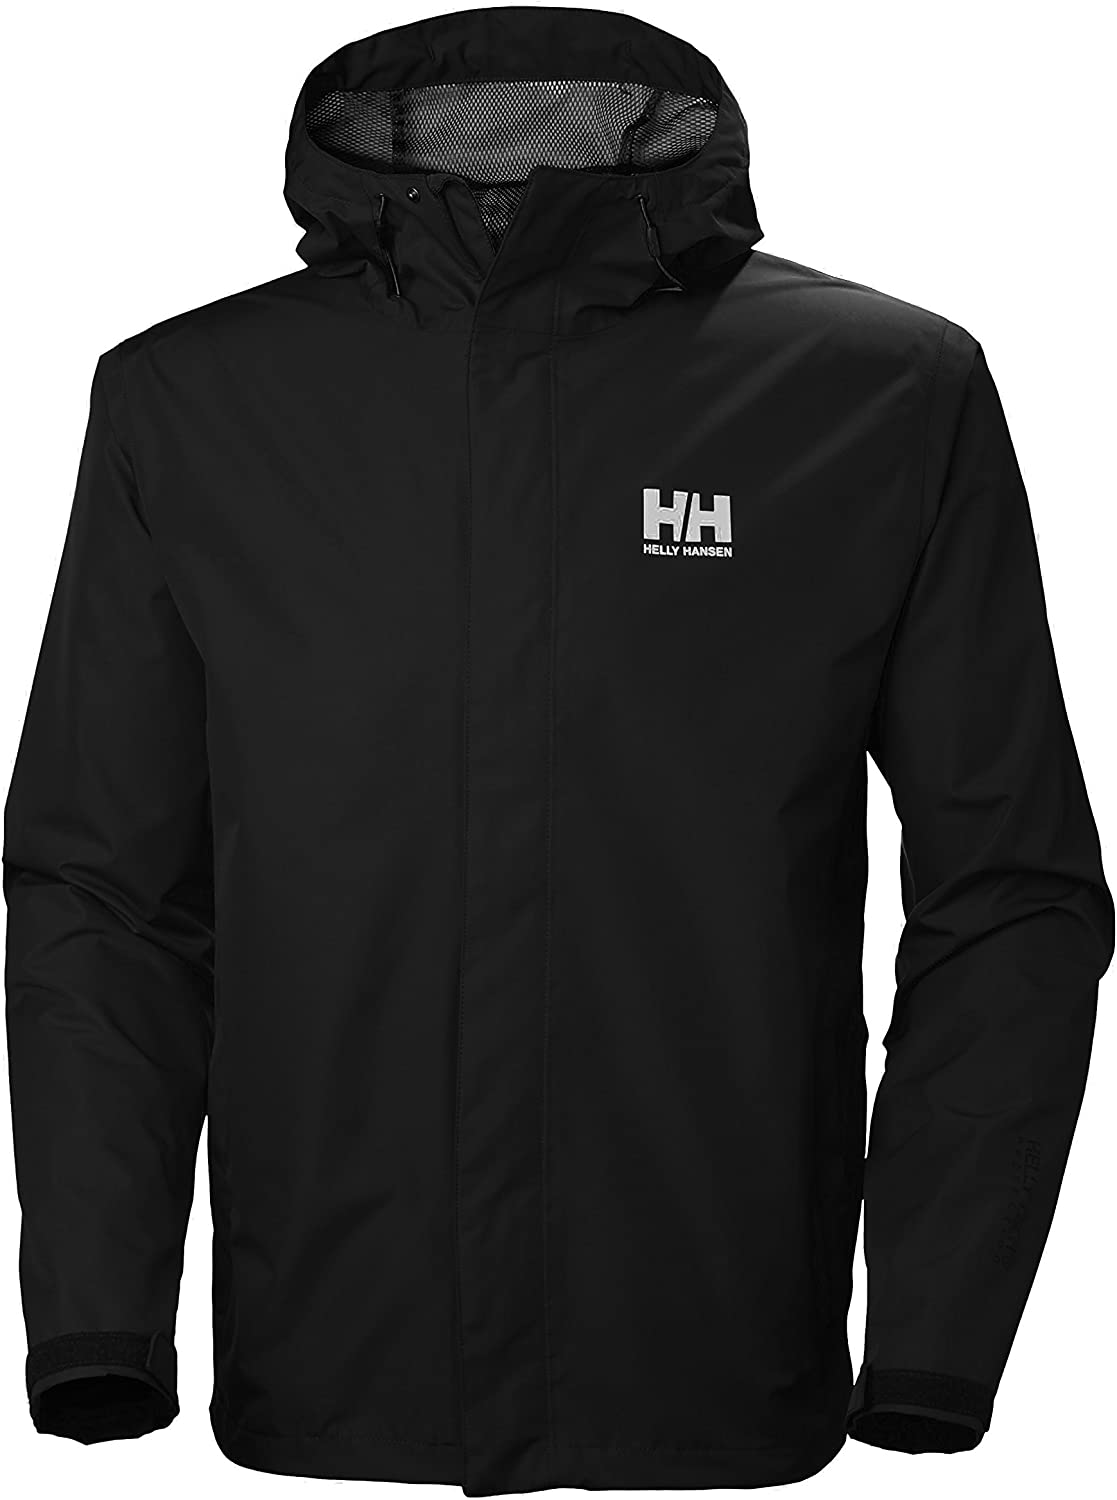 Helly Hansen Men's Seven J Waterproof, Windproof, and Breathable Rain Jacket with Hood : Clothing